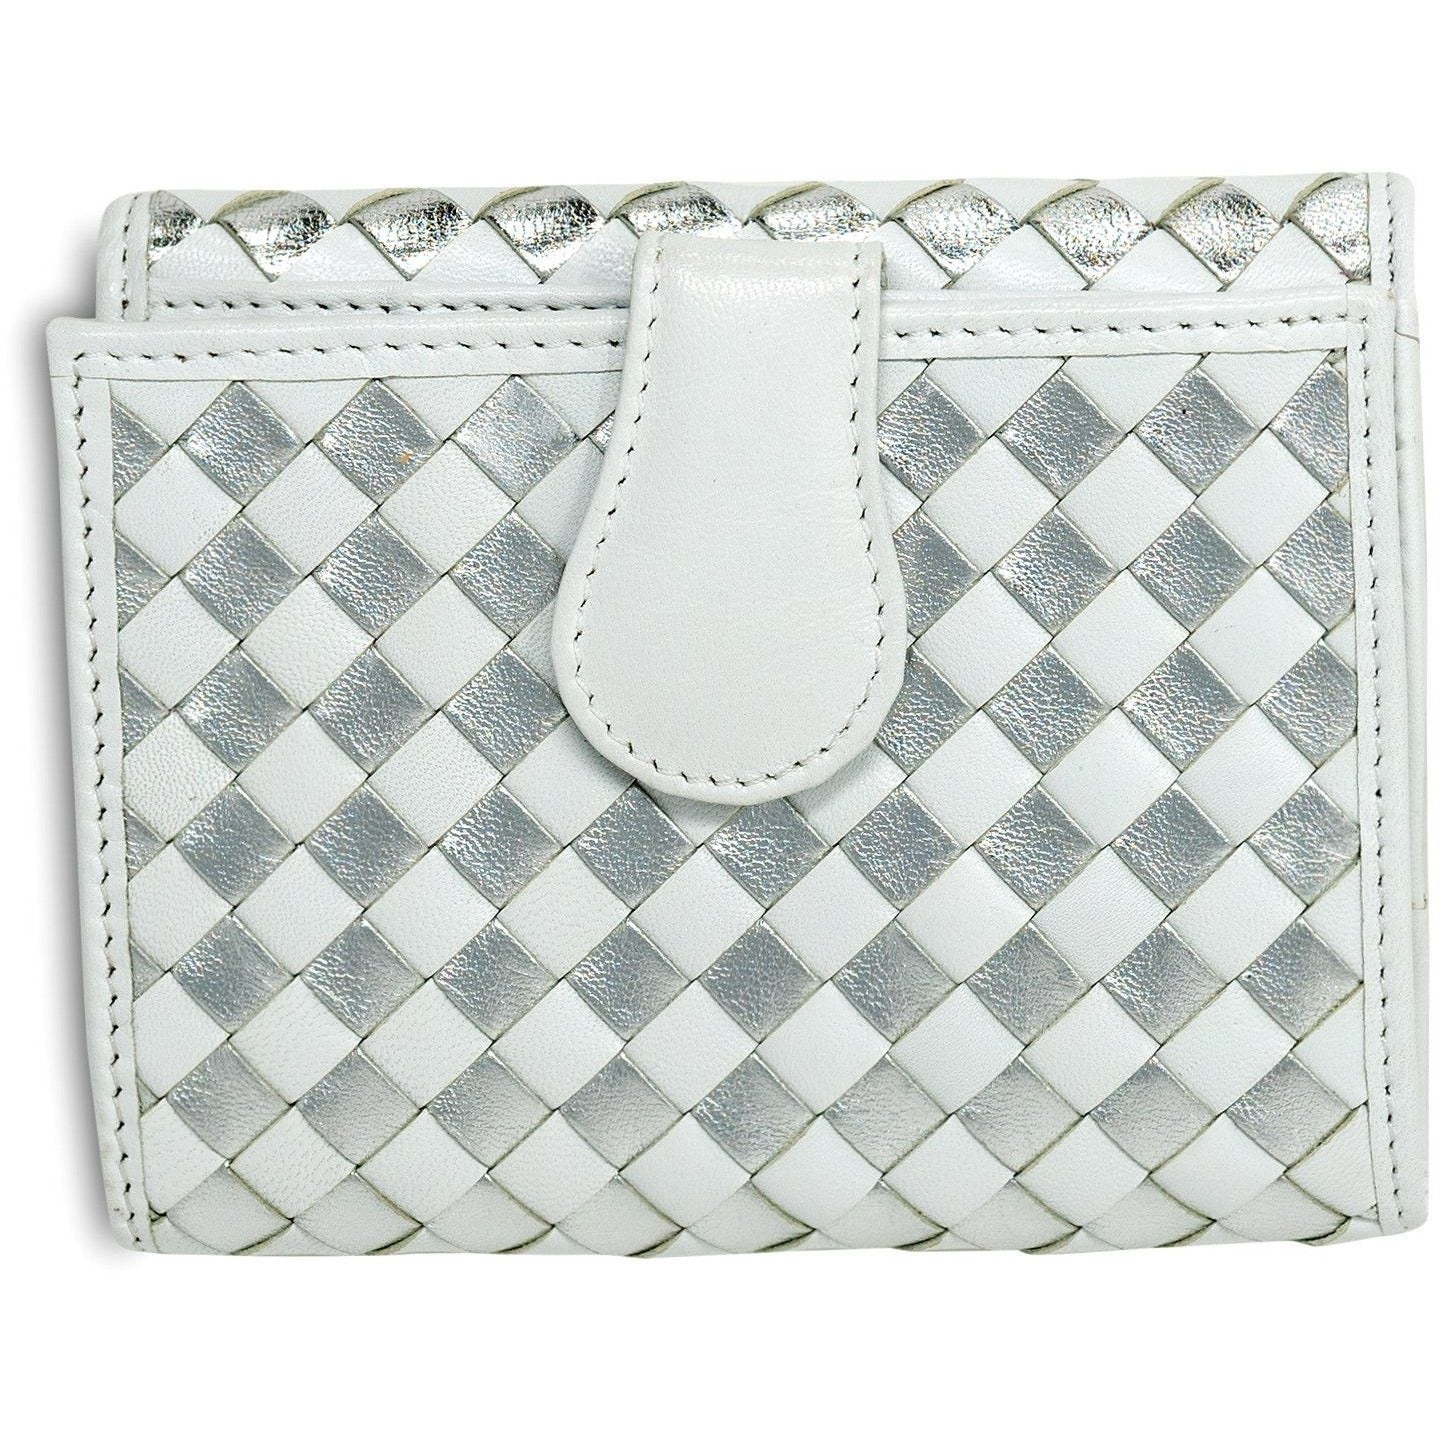 Women Intrecciato Leather Wallet in Nappa White and Silver - Jennifer Tattanelli